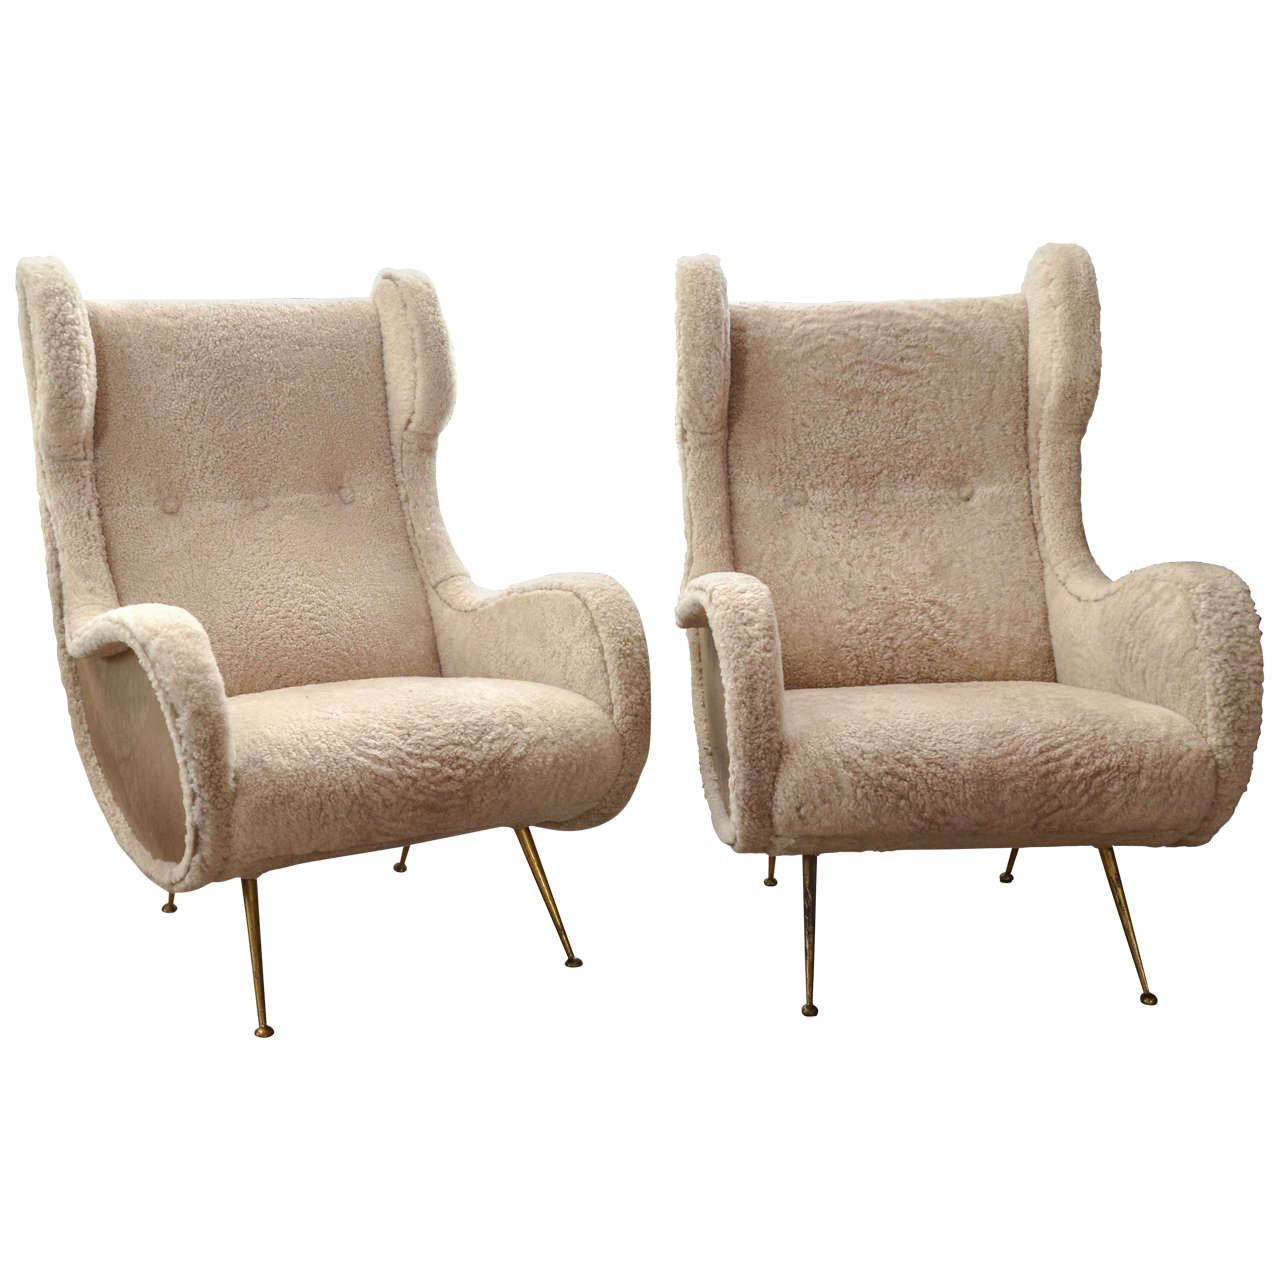 high backed chairs for the elderly wheelchair sign of quinn mid century italian back chair in style marco